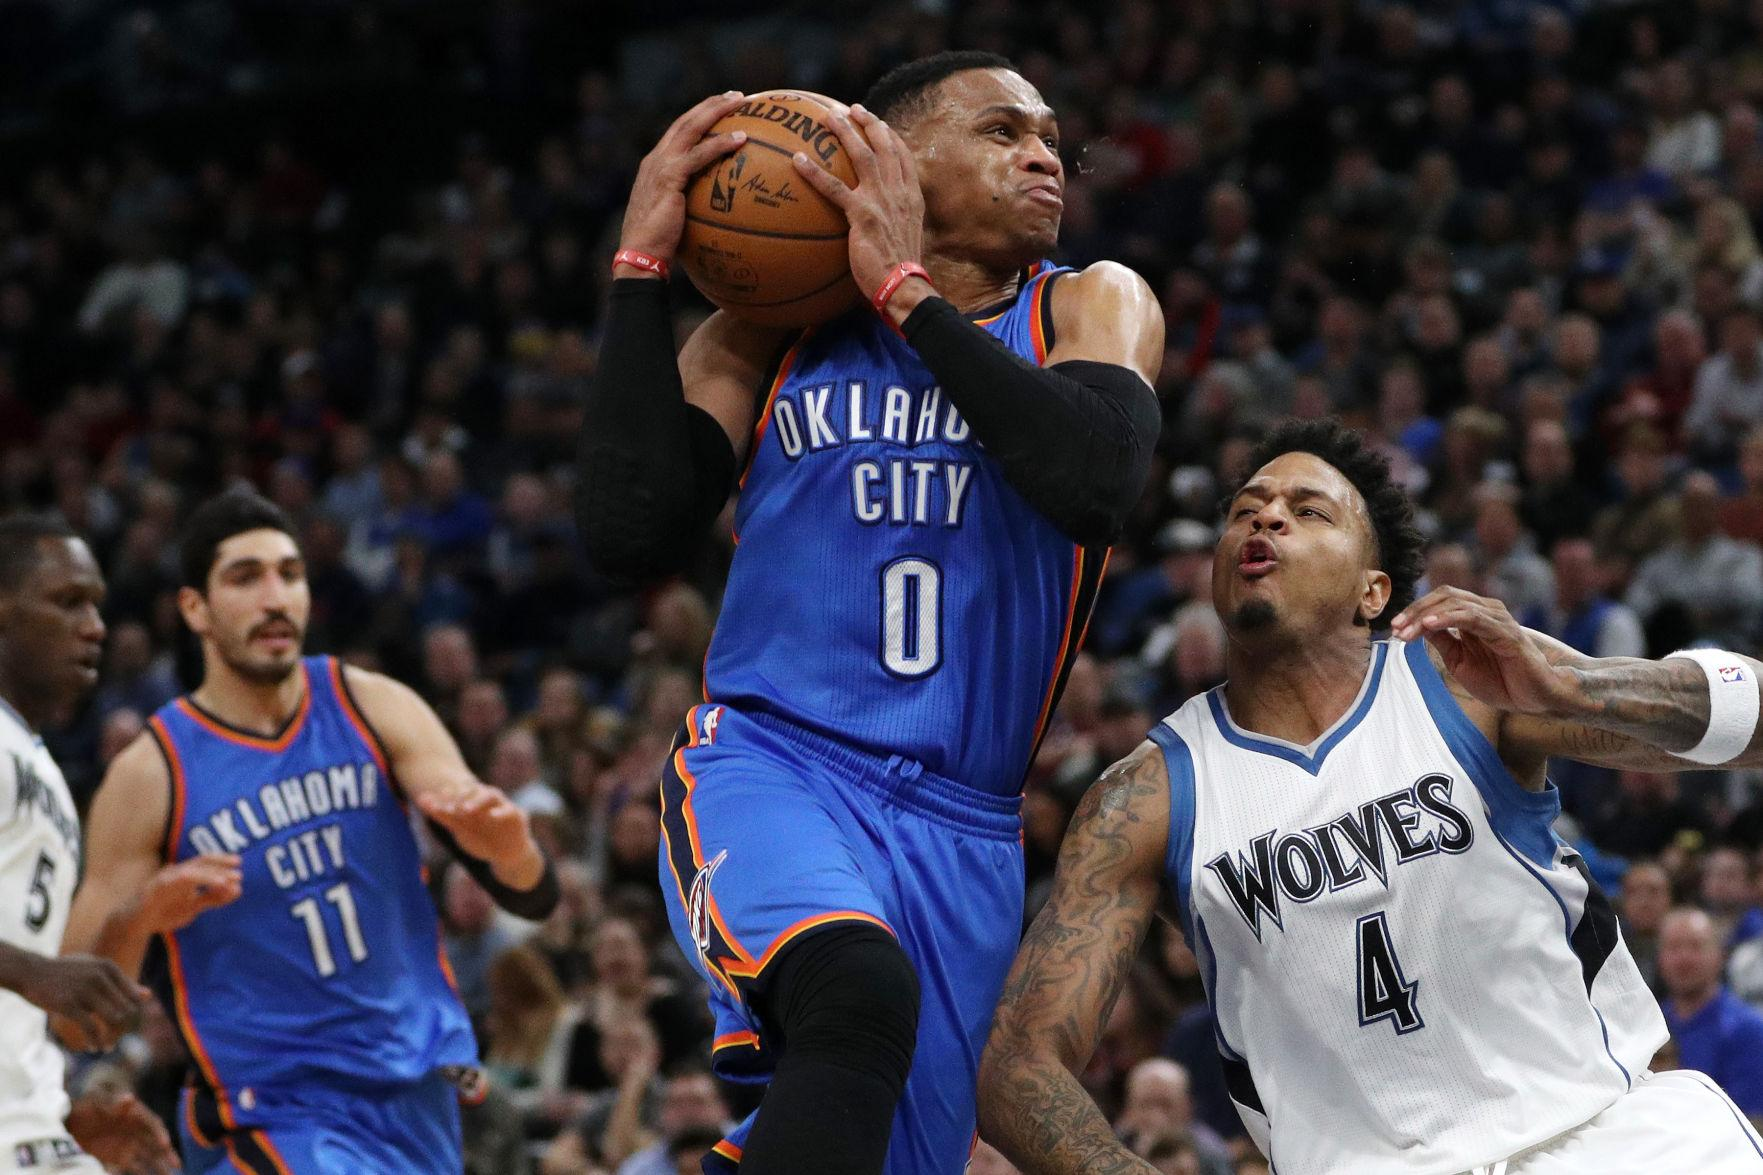 The Oklahoma City Thunder's Russell Westbrook (0) drives to the basket against the Minnesota Timberwolves' Brandon Rush (4) during the second half on Friday, Jan. 13, 2017, at the Target Center in Minneapolis. The Timberwolves won, 96-86. (Anthony Souffle/Minneapolis Star Tribune/TNS)